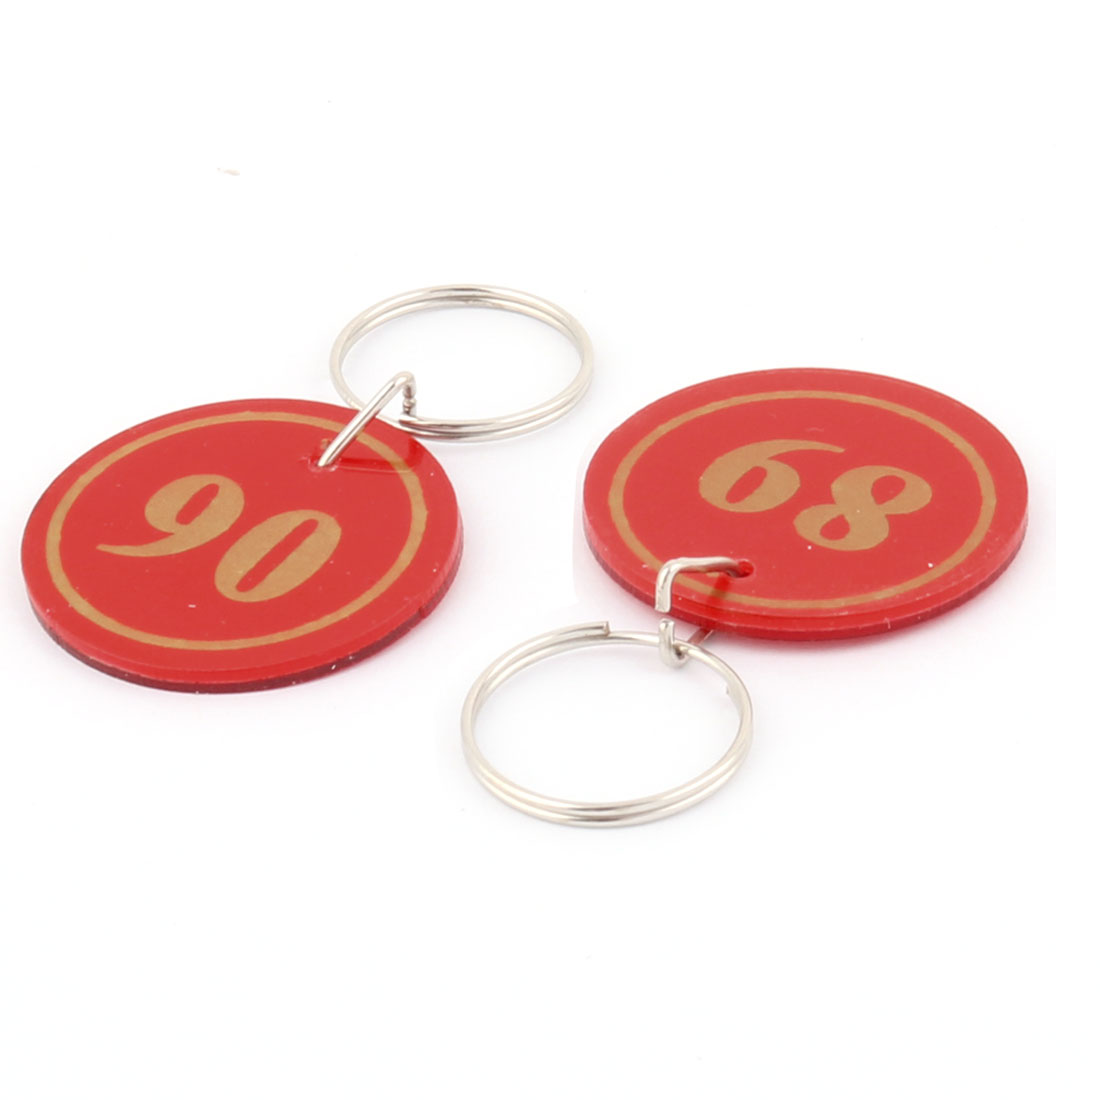 Plastic Round Shape Suitcase Luggage Package Split Ring Key Tags Label 50 Pcs - image 2 de 3